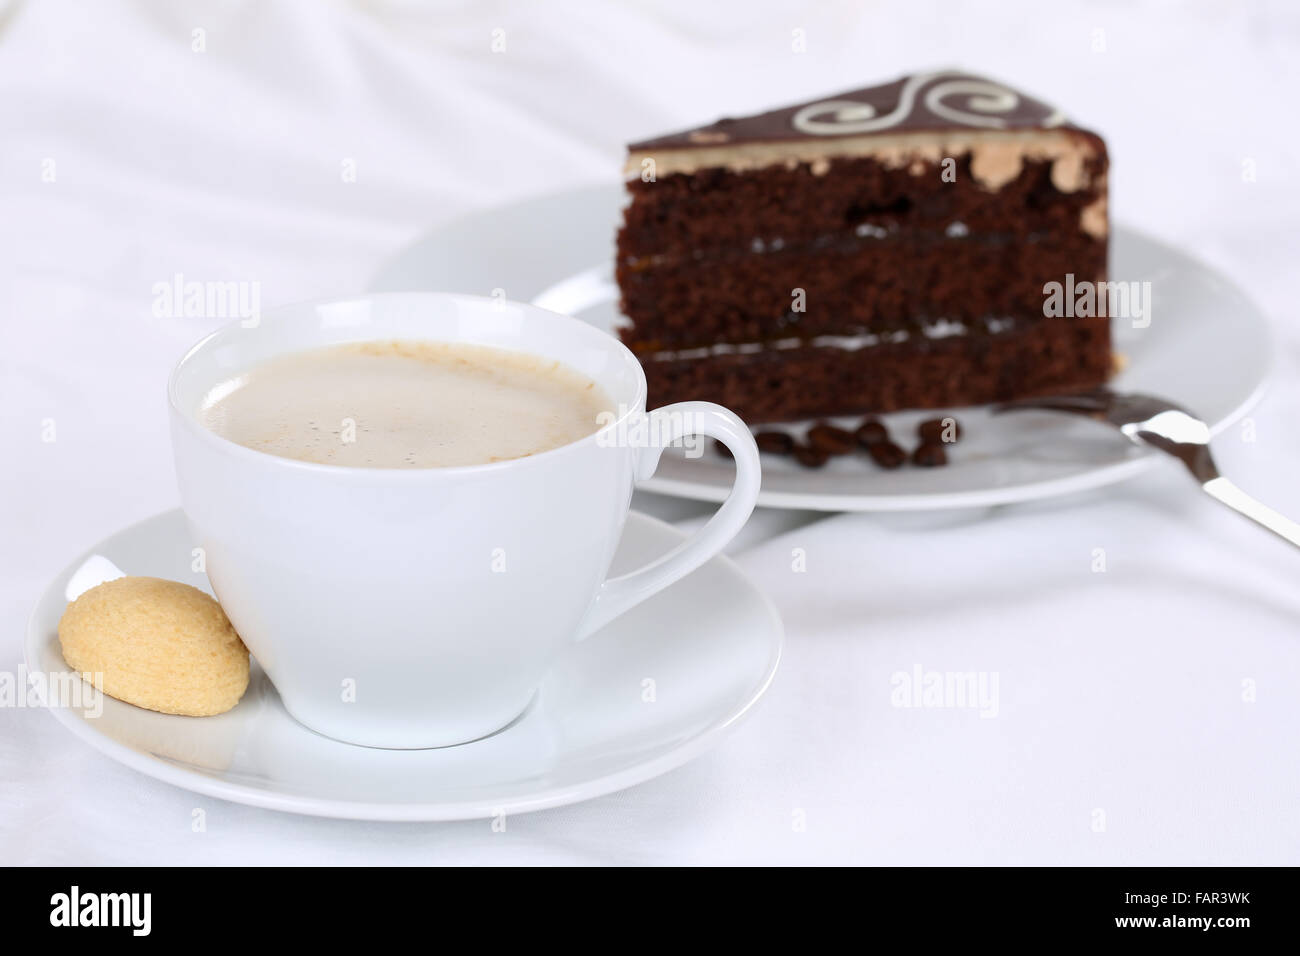 Coffee and cake sweet chocolate tart dessert pastry - Stock Image